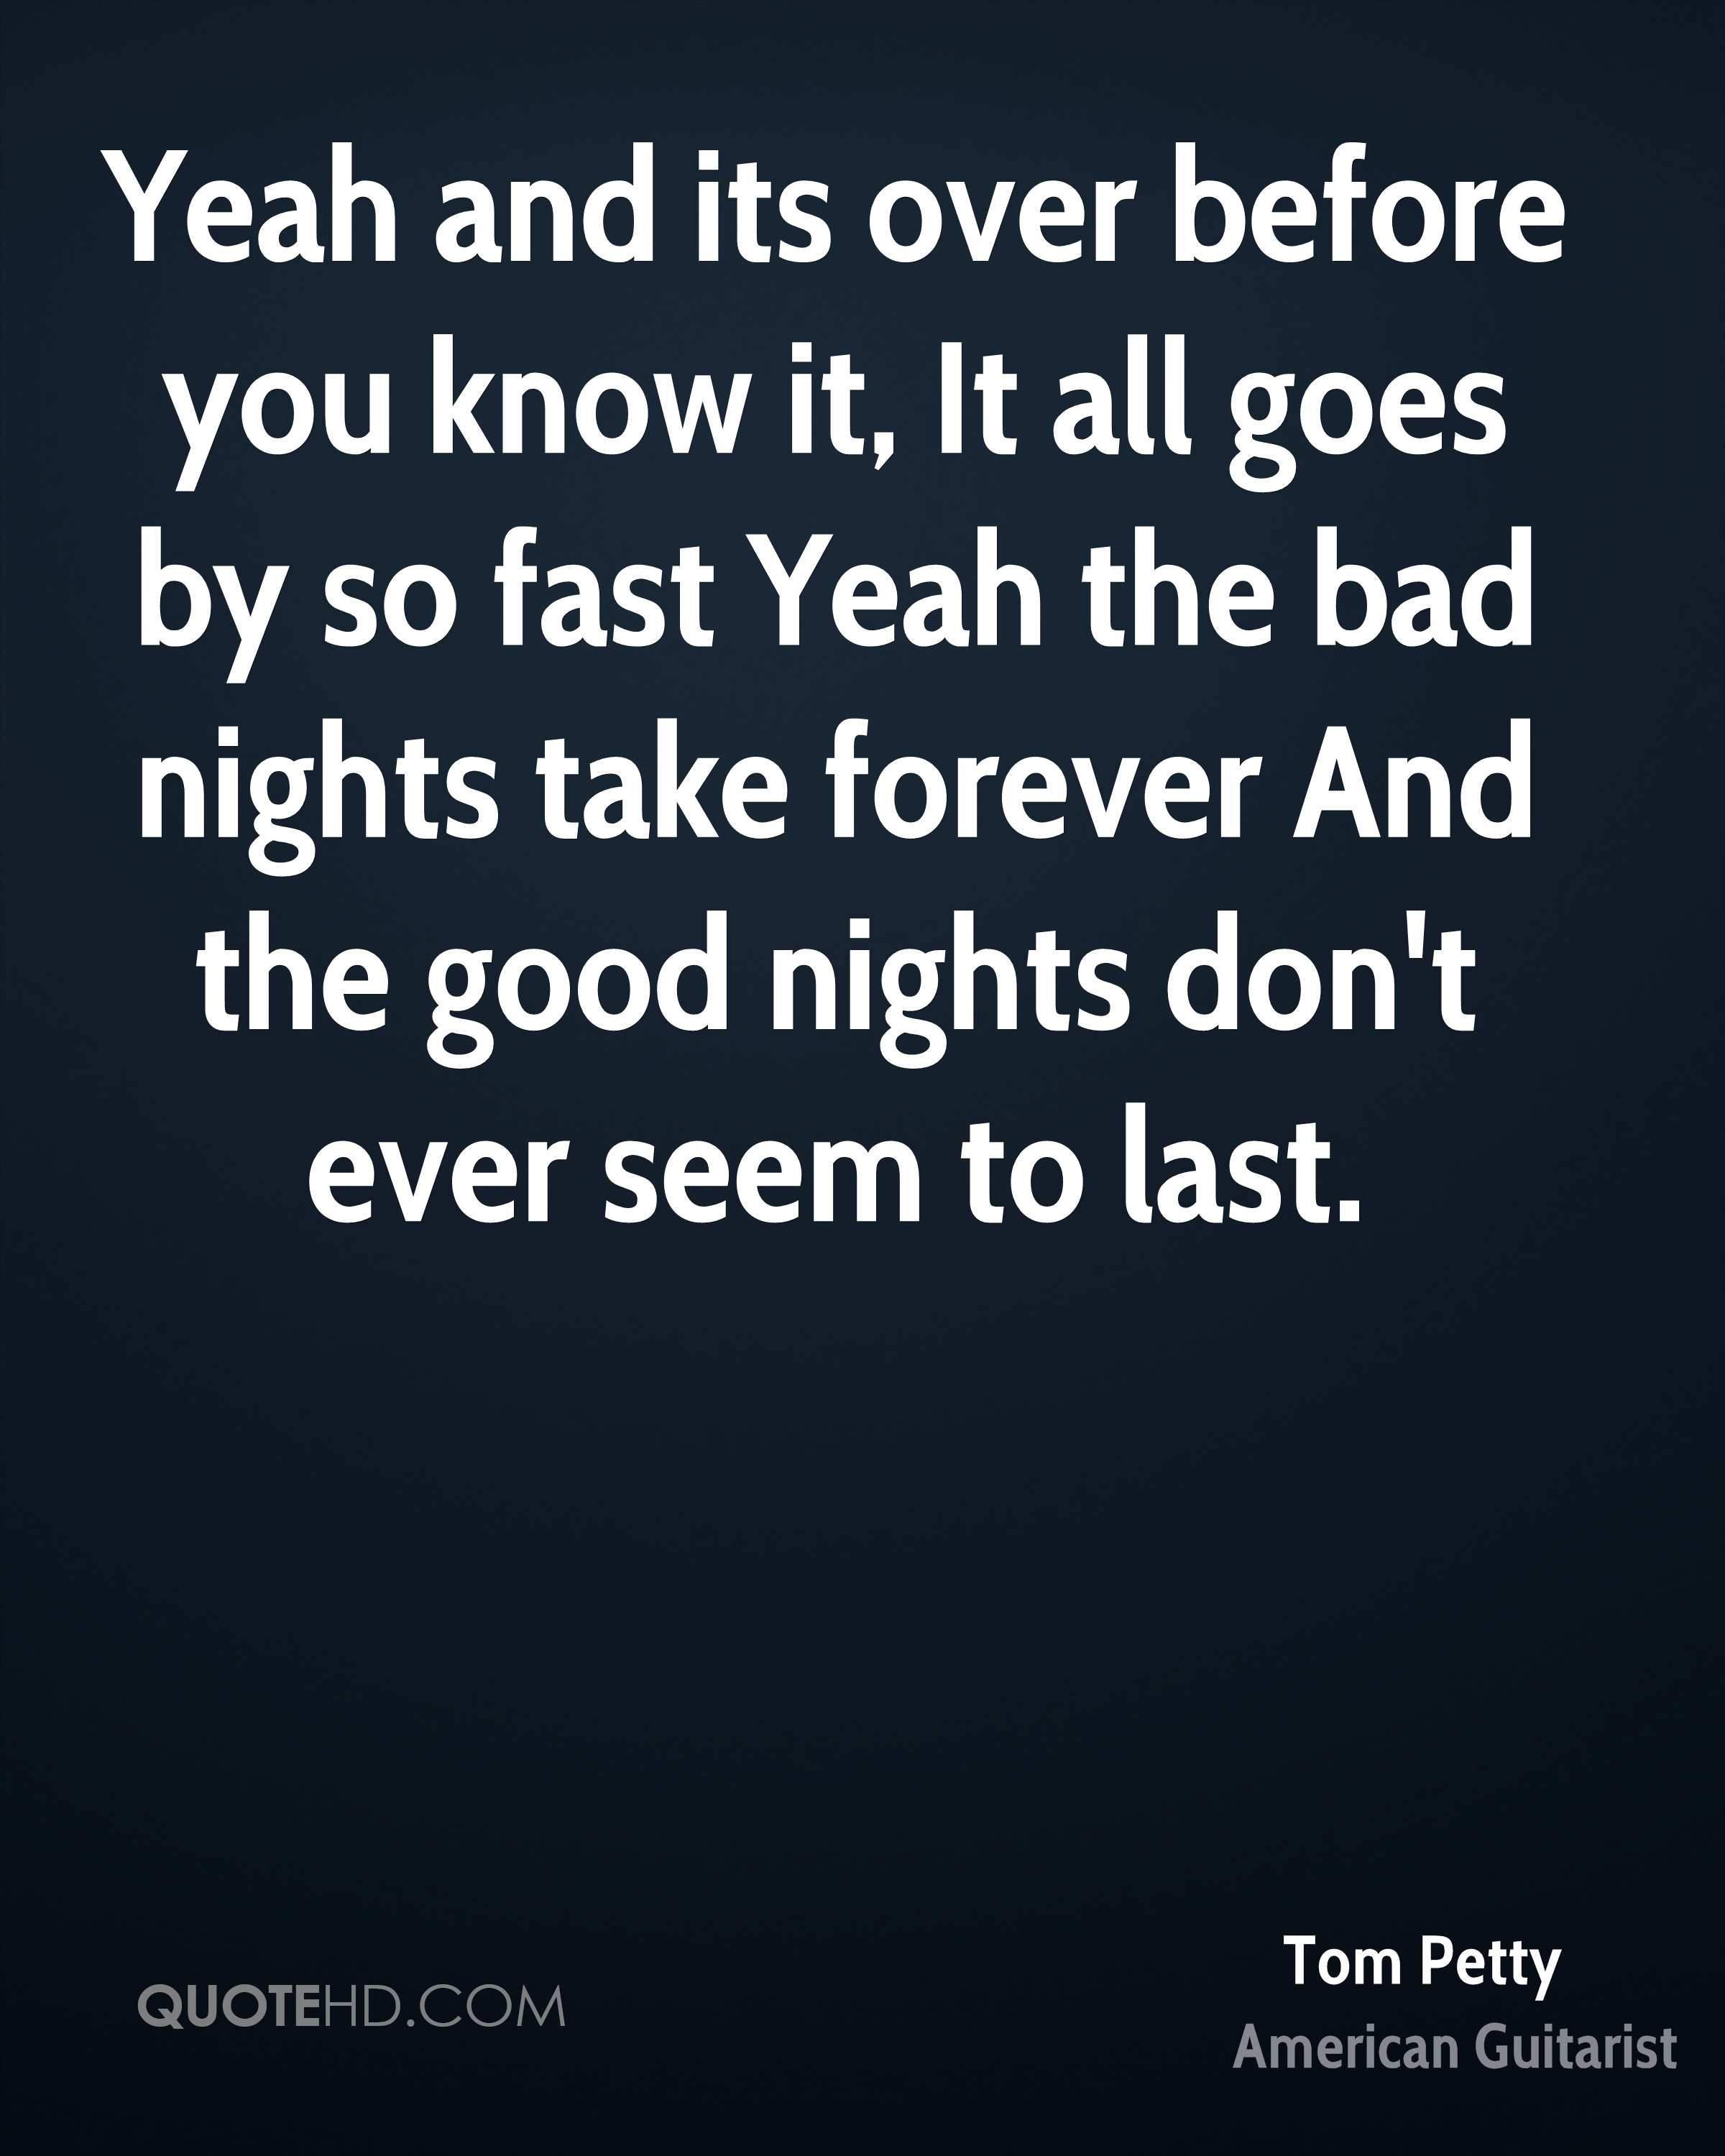 Yeah and its over before you know it, It all goes by so fast Yeah the bad nights take forever And the good nights don't ever seem to last.